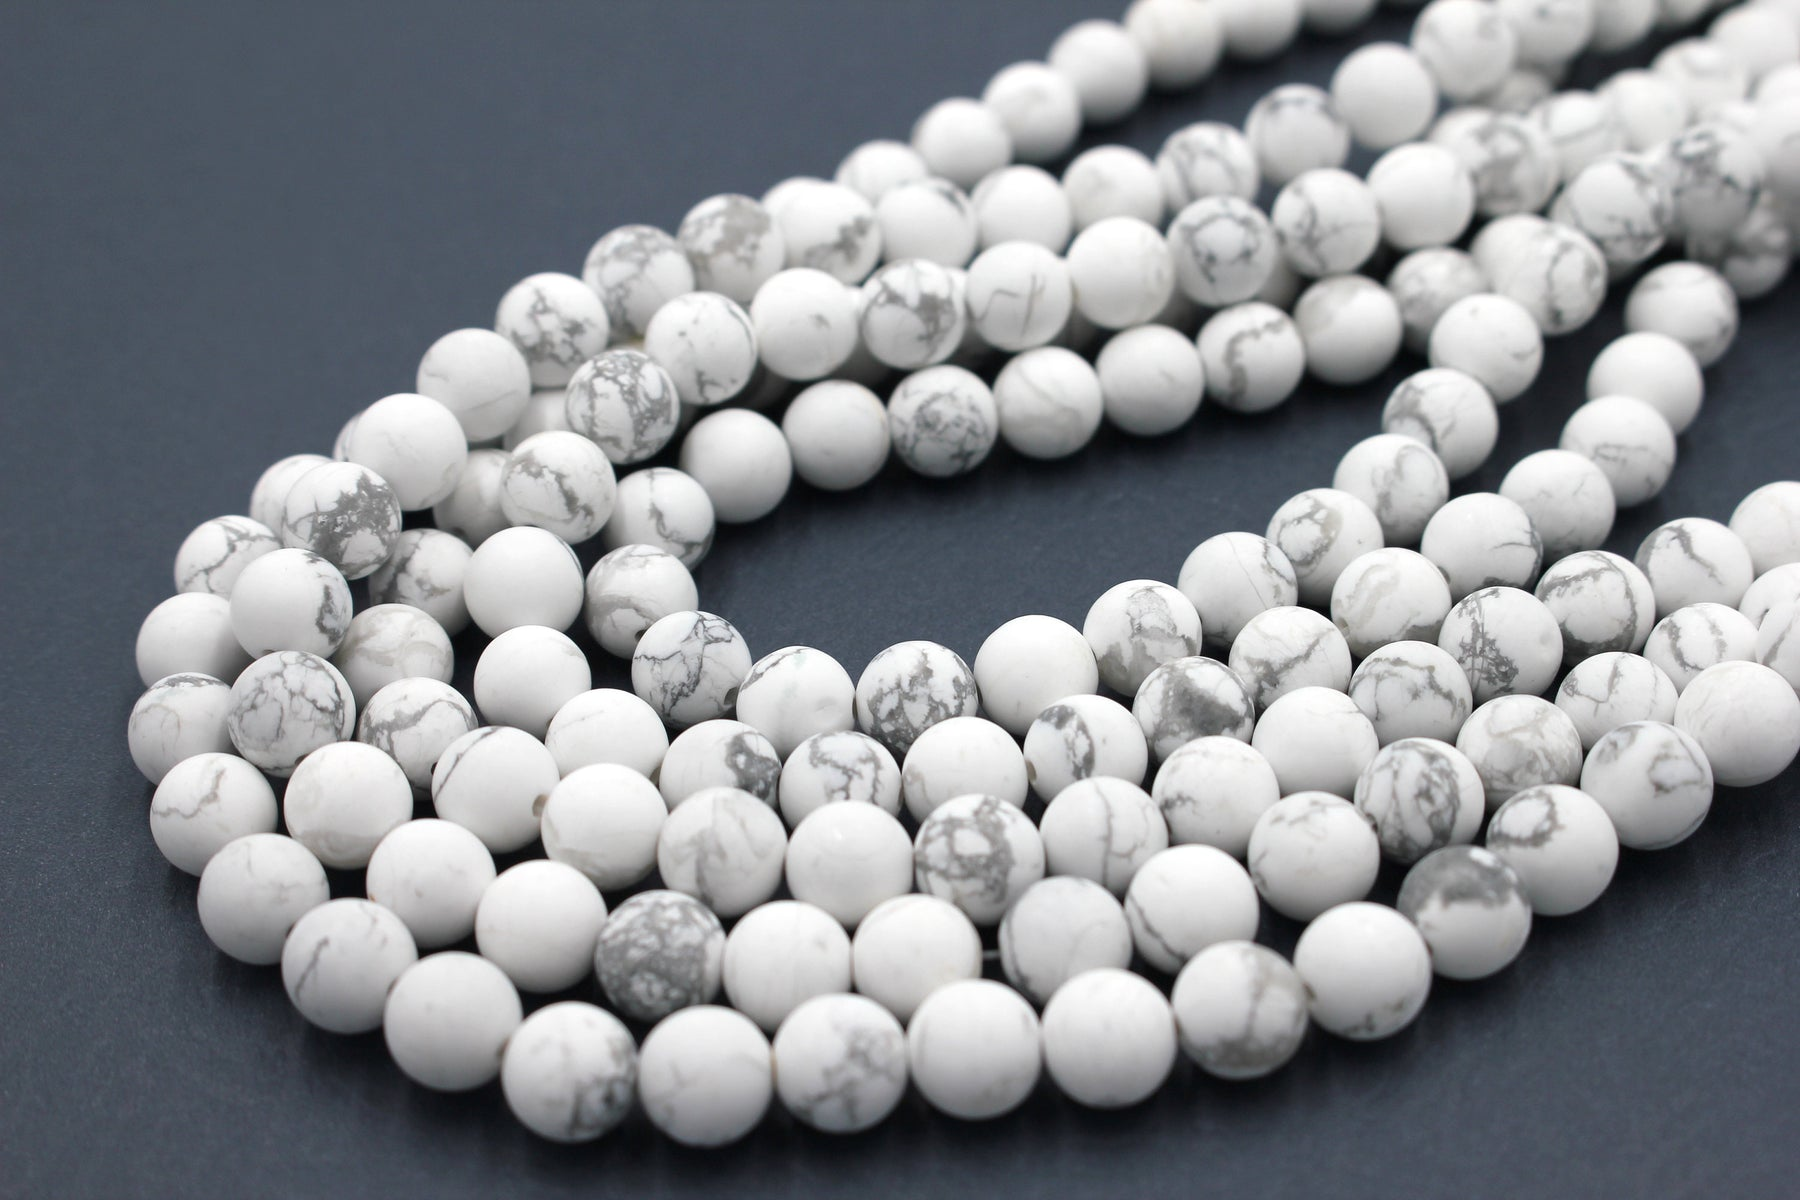 8mm white howlite, matte, 1 strand, 16 inches, approx. 48 beads.